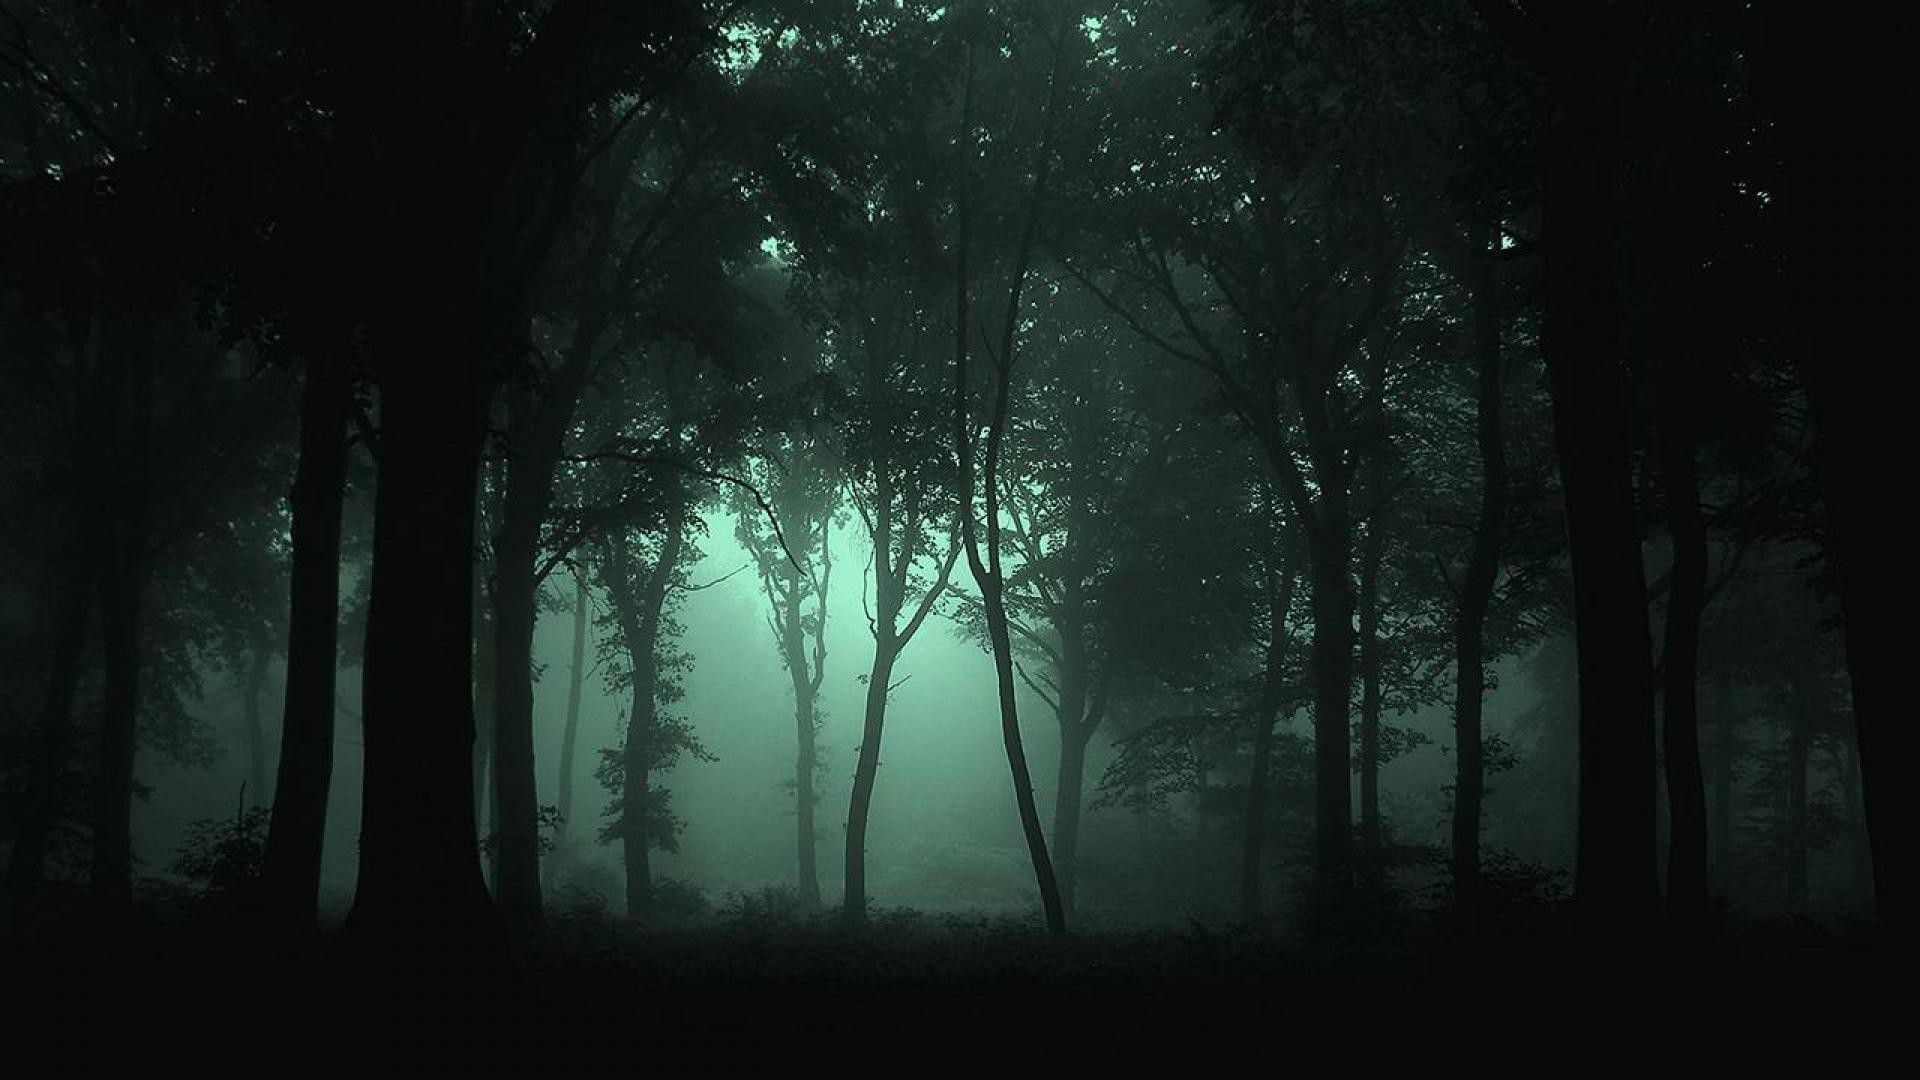 1920x1080 Dark Forest Wallpaper 1080p | Natures Wallpapers | Pinterest | Forest  wallpaper, Dark forest and Wallpaper